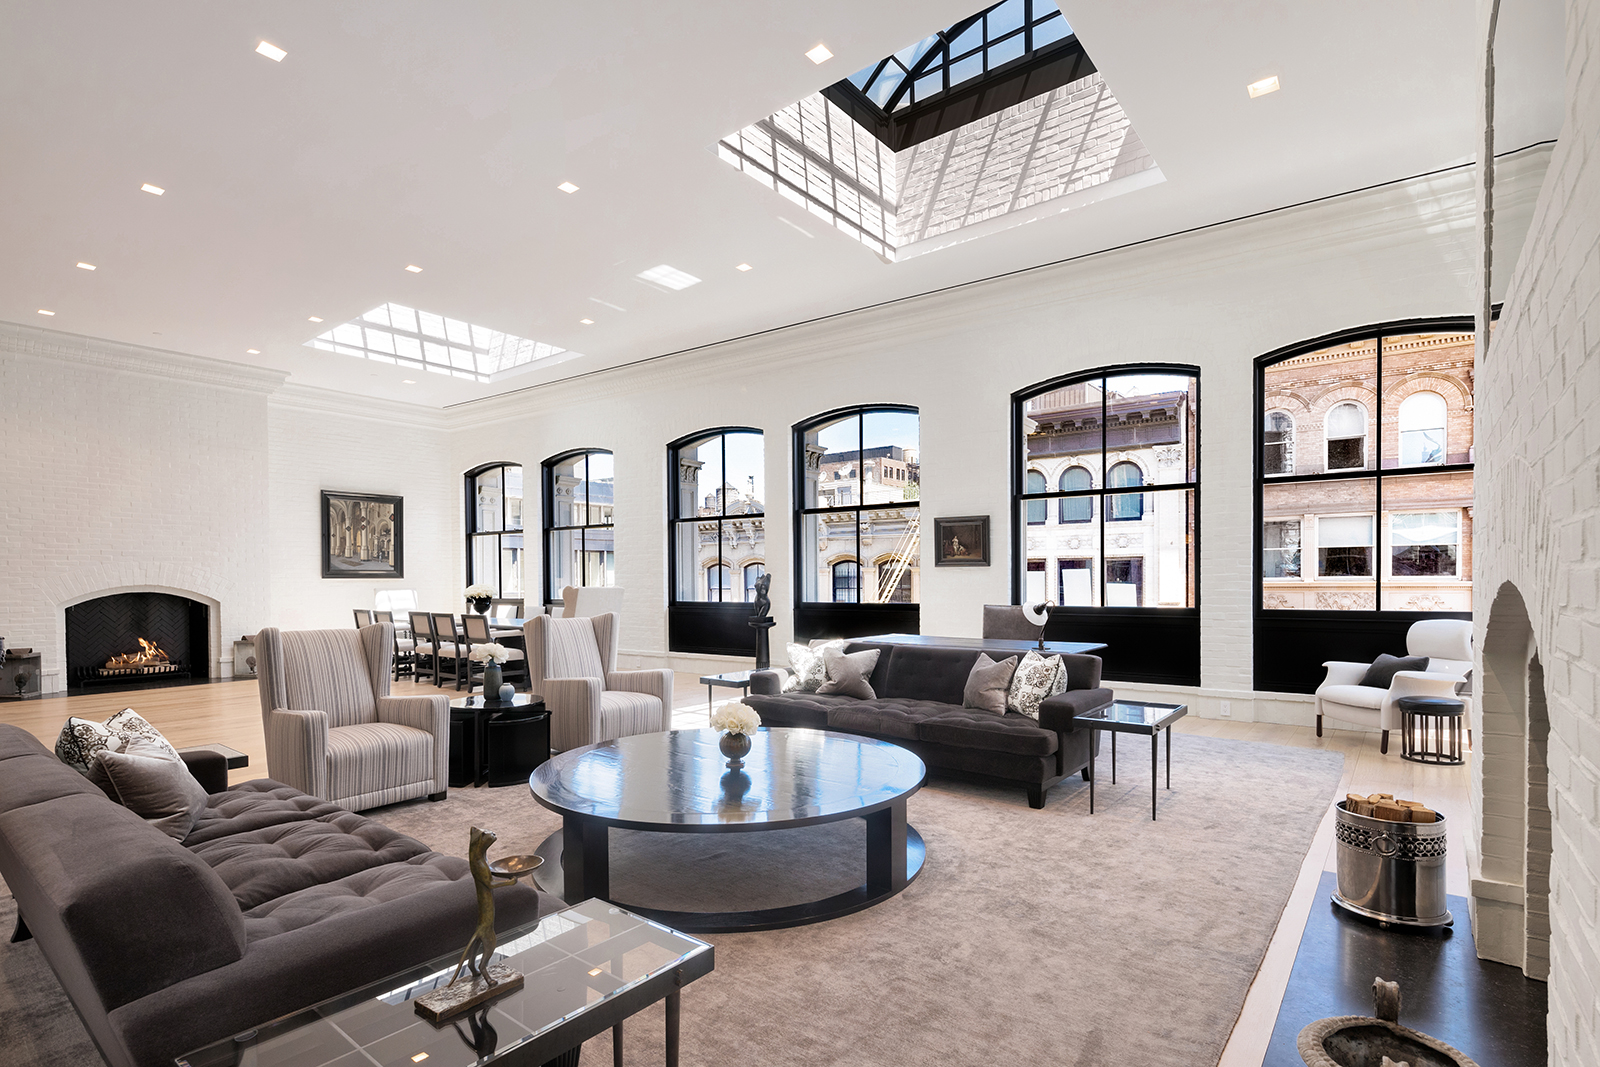 421 Broome St Penthouse New York Ny 10013 Core Real